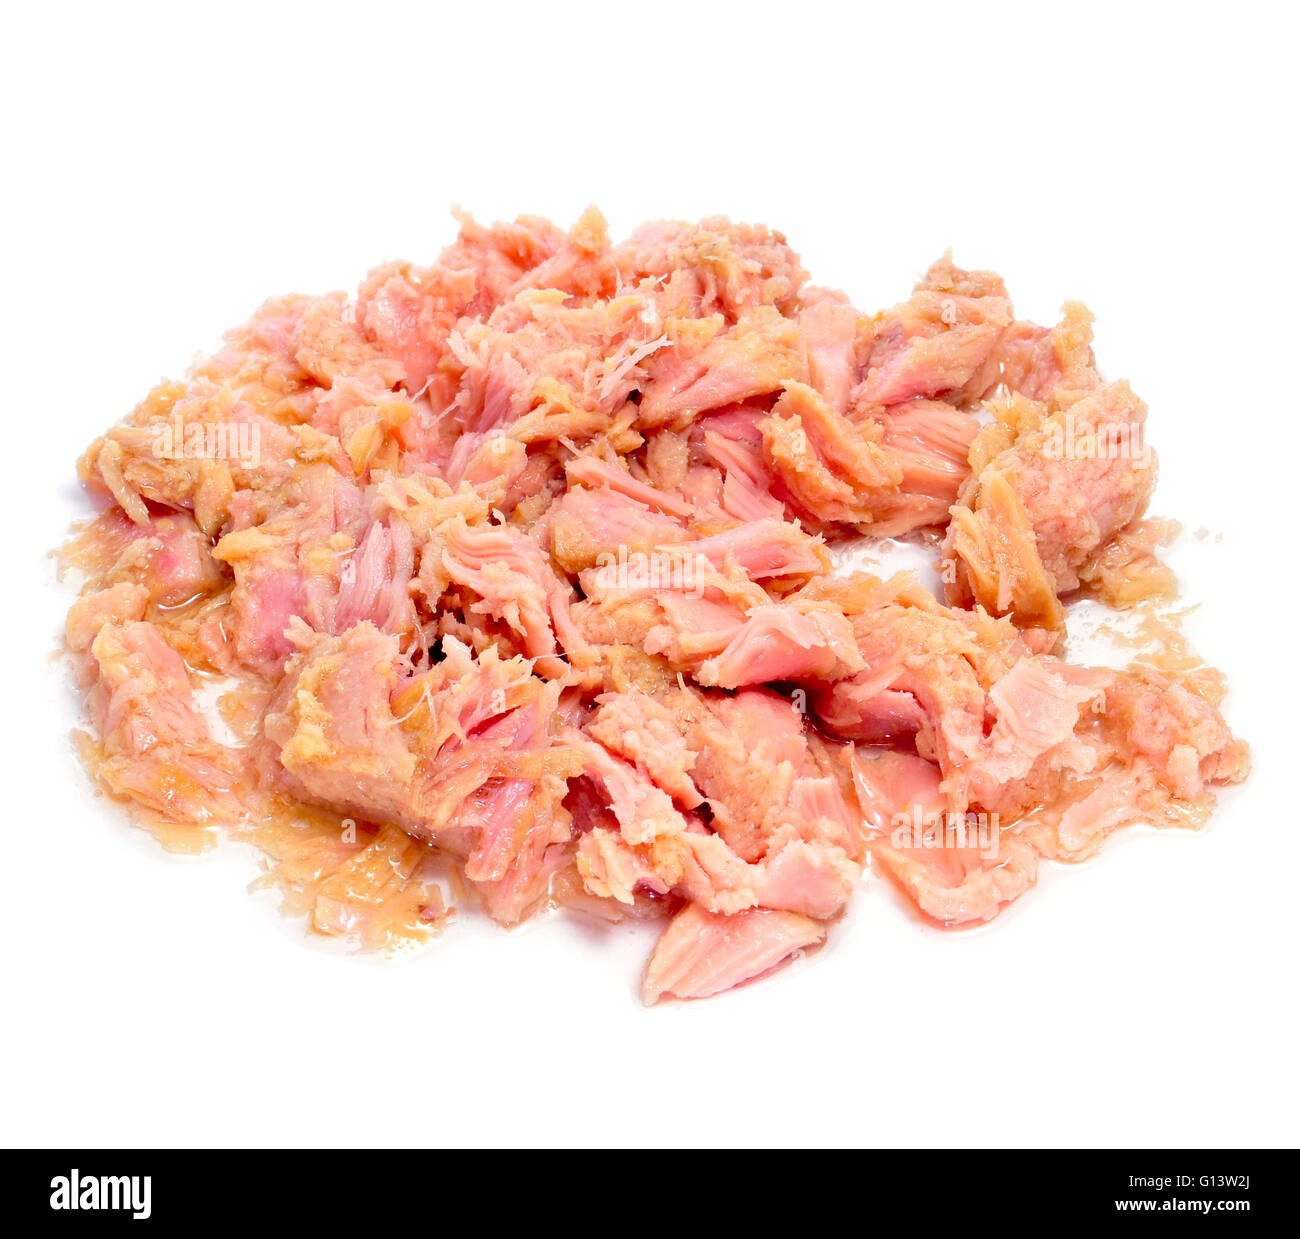 a pile of tuna meat from a can on a white background Stock Photo